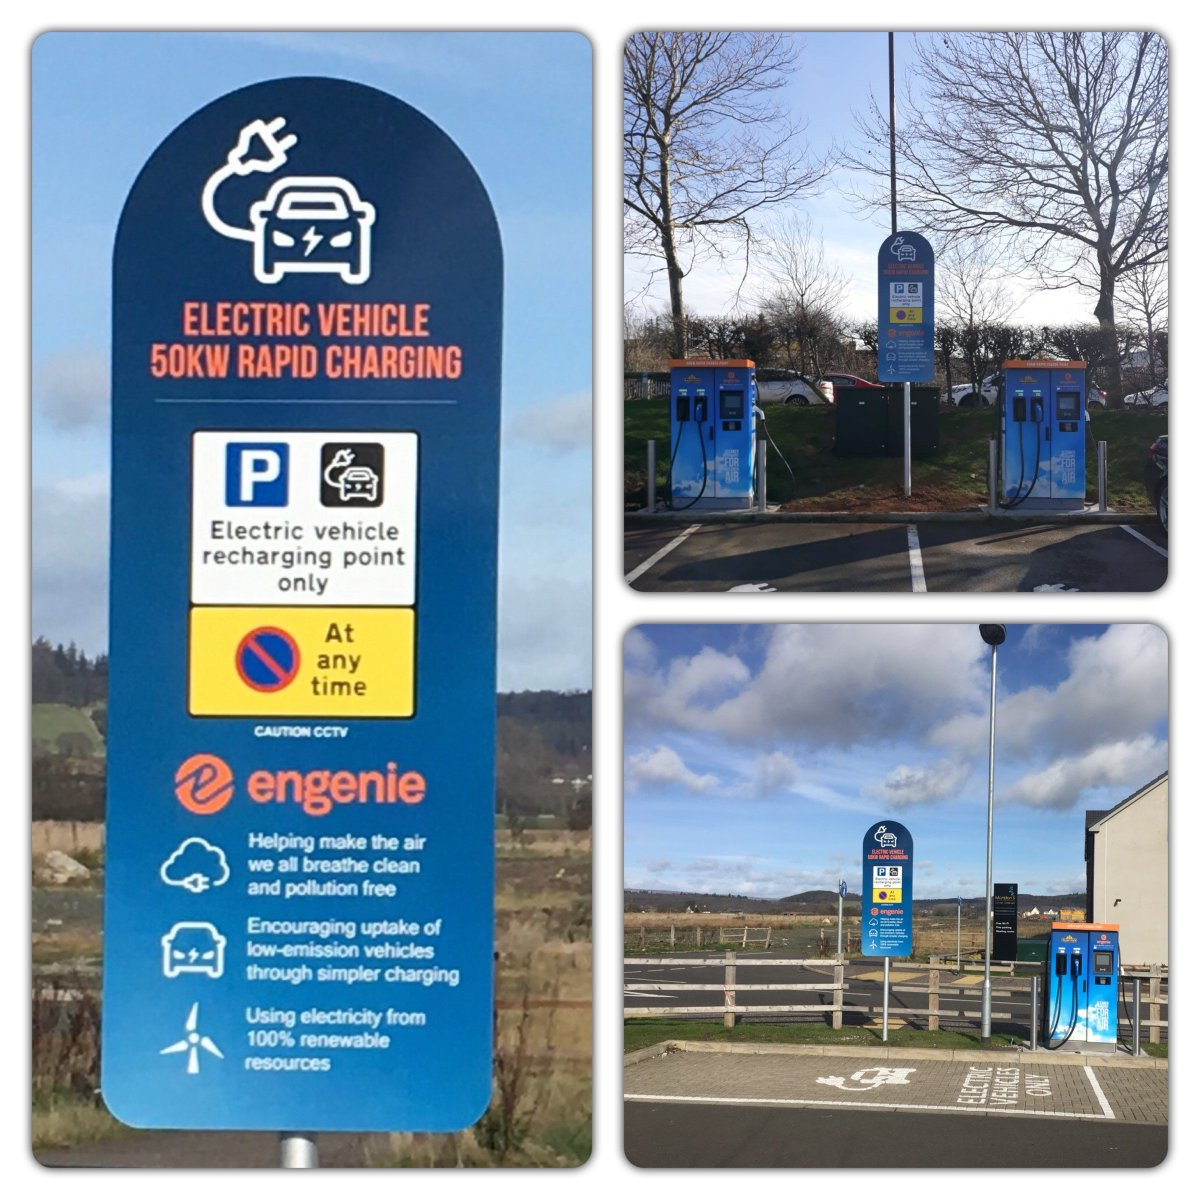 Some of our rapid charging installations for @engenieUK look out for these fantastic facilities in key locations powered by 100% renewable energy popping up all over the UK.  @OLEVgovuk @zap_map @GoUltraLow @WattsUpUK #rapidcharger #ev #renewableenergy